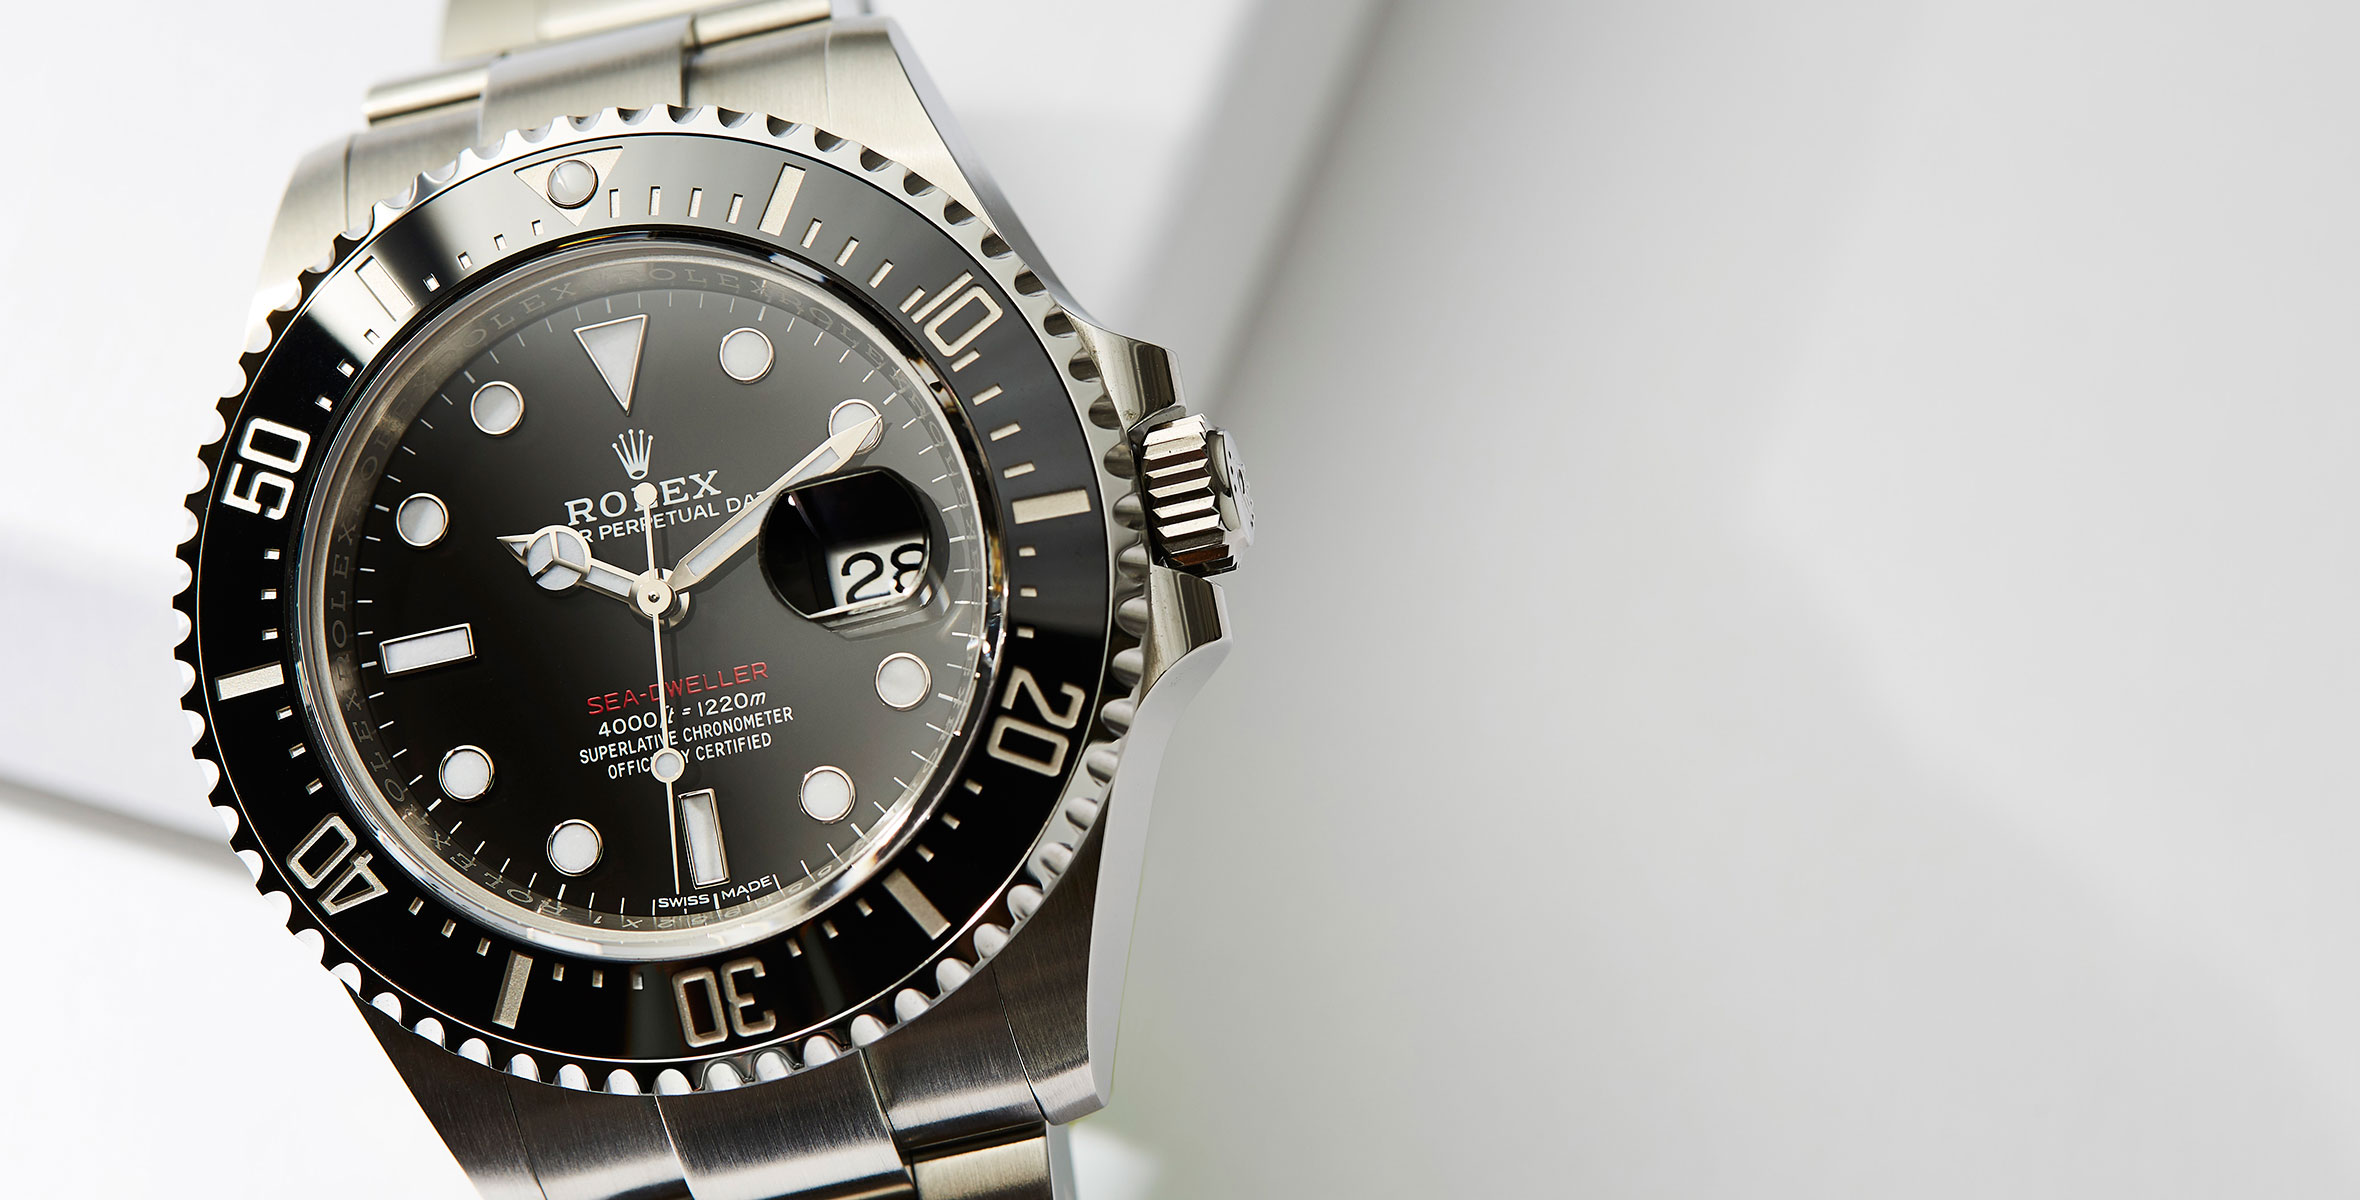 The 43 mm replica Rolex Sea-Dweller 126600 watches have black dials.